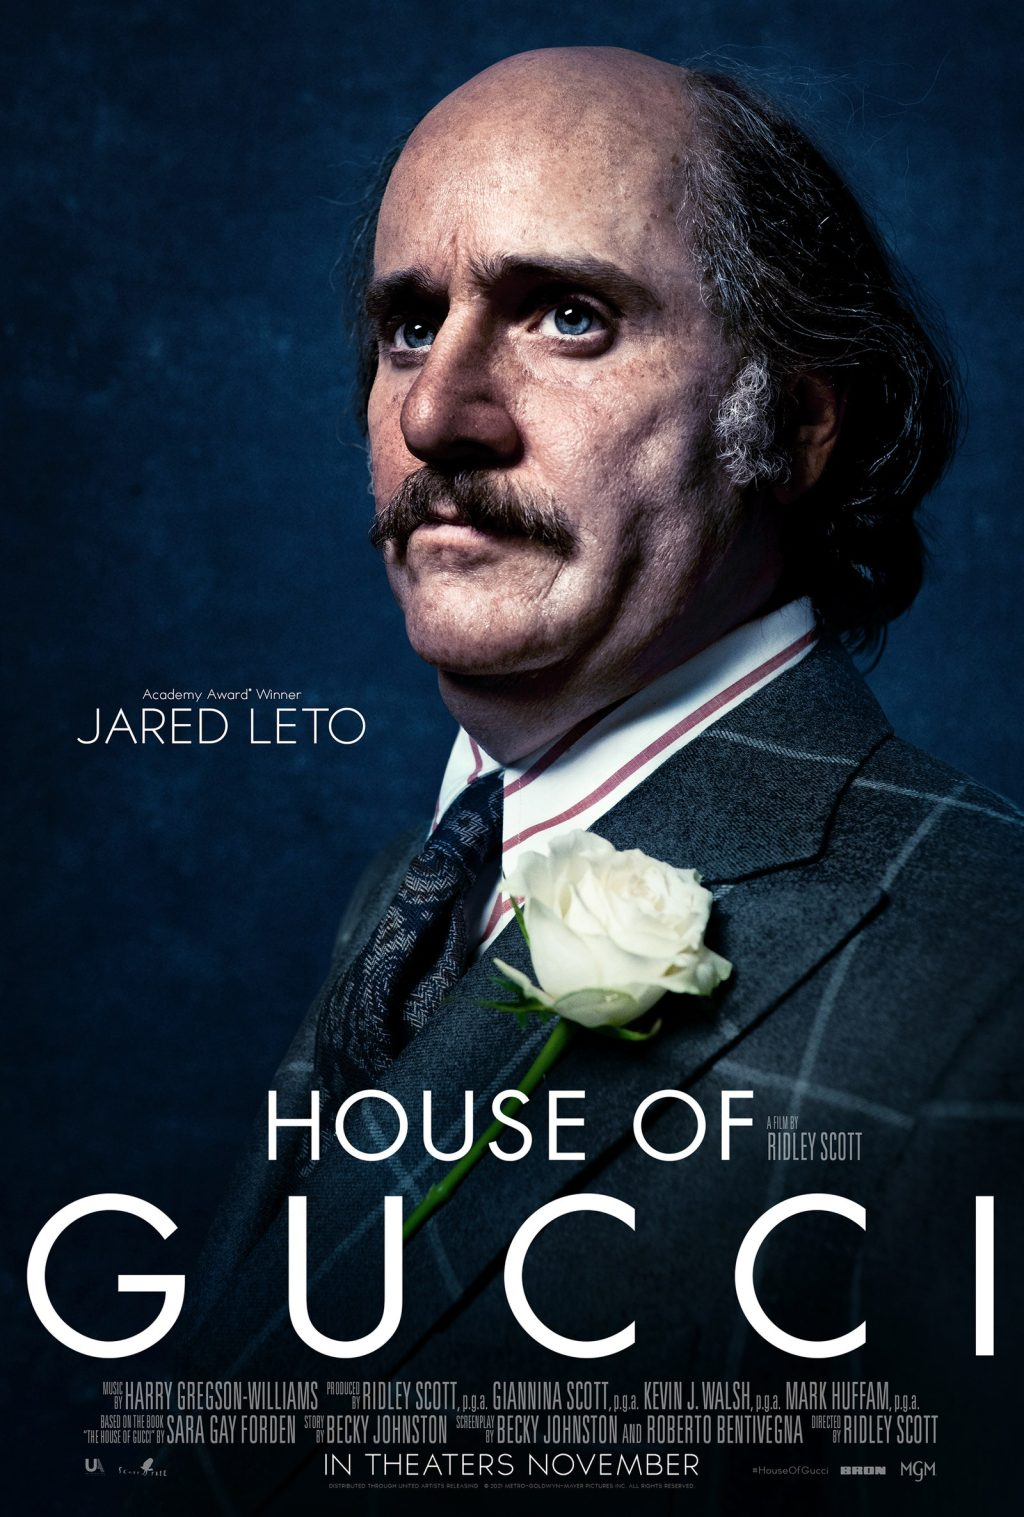 House of Gucci Jared Leto